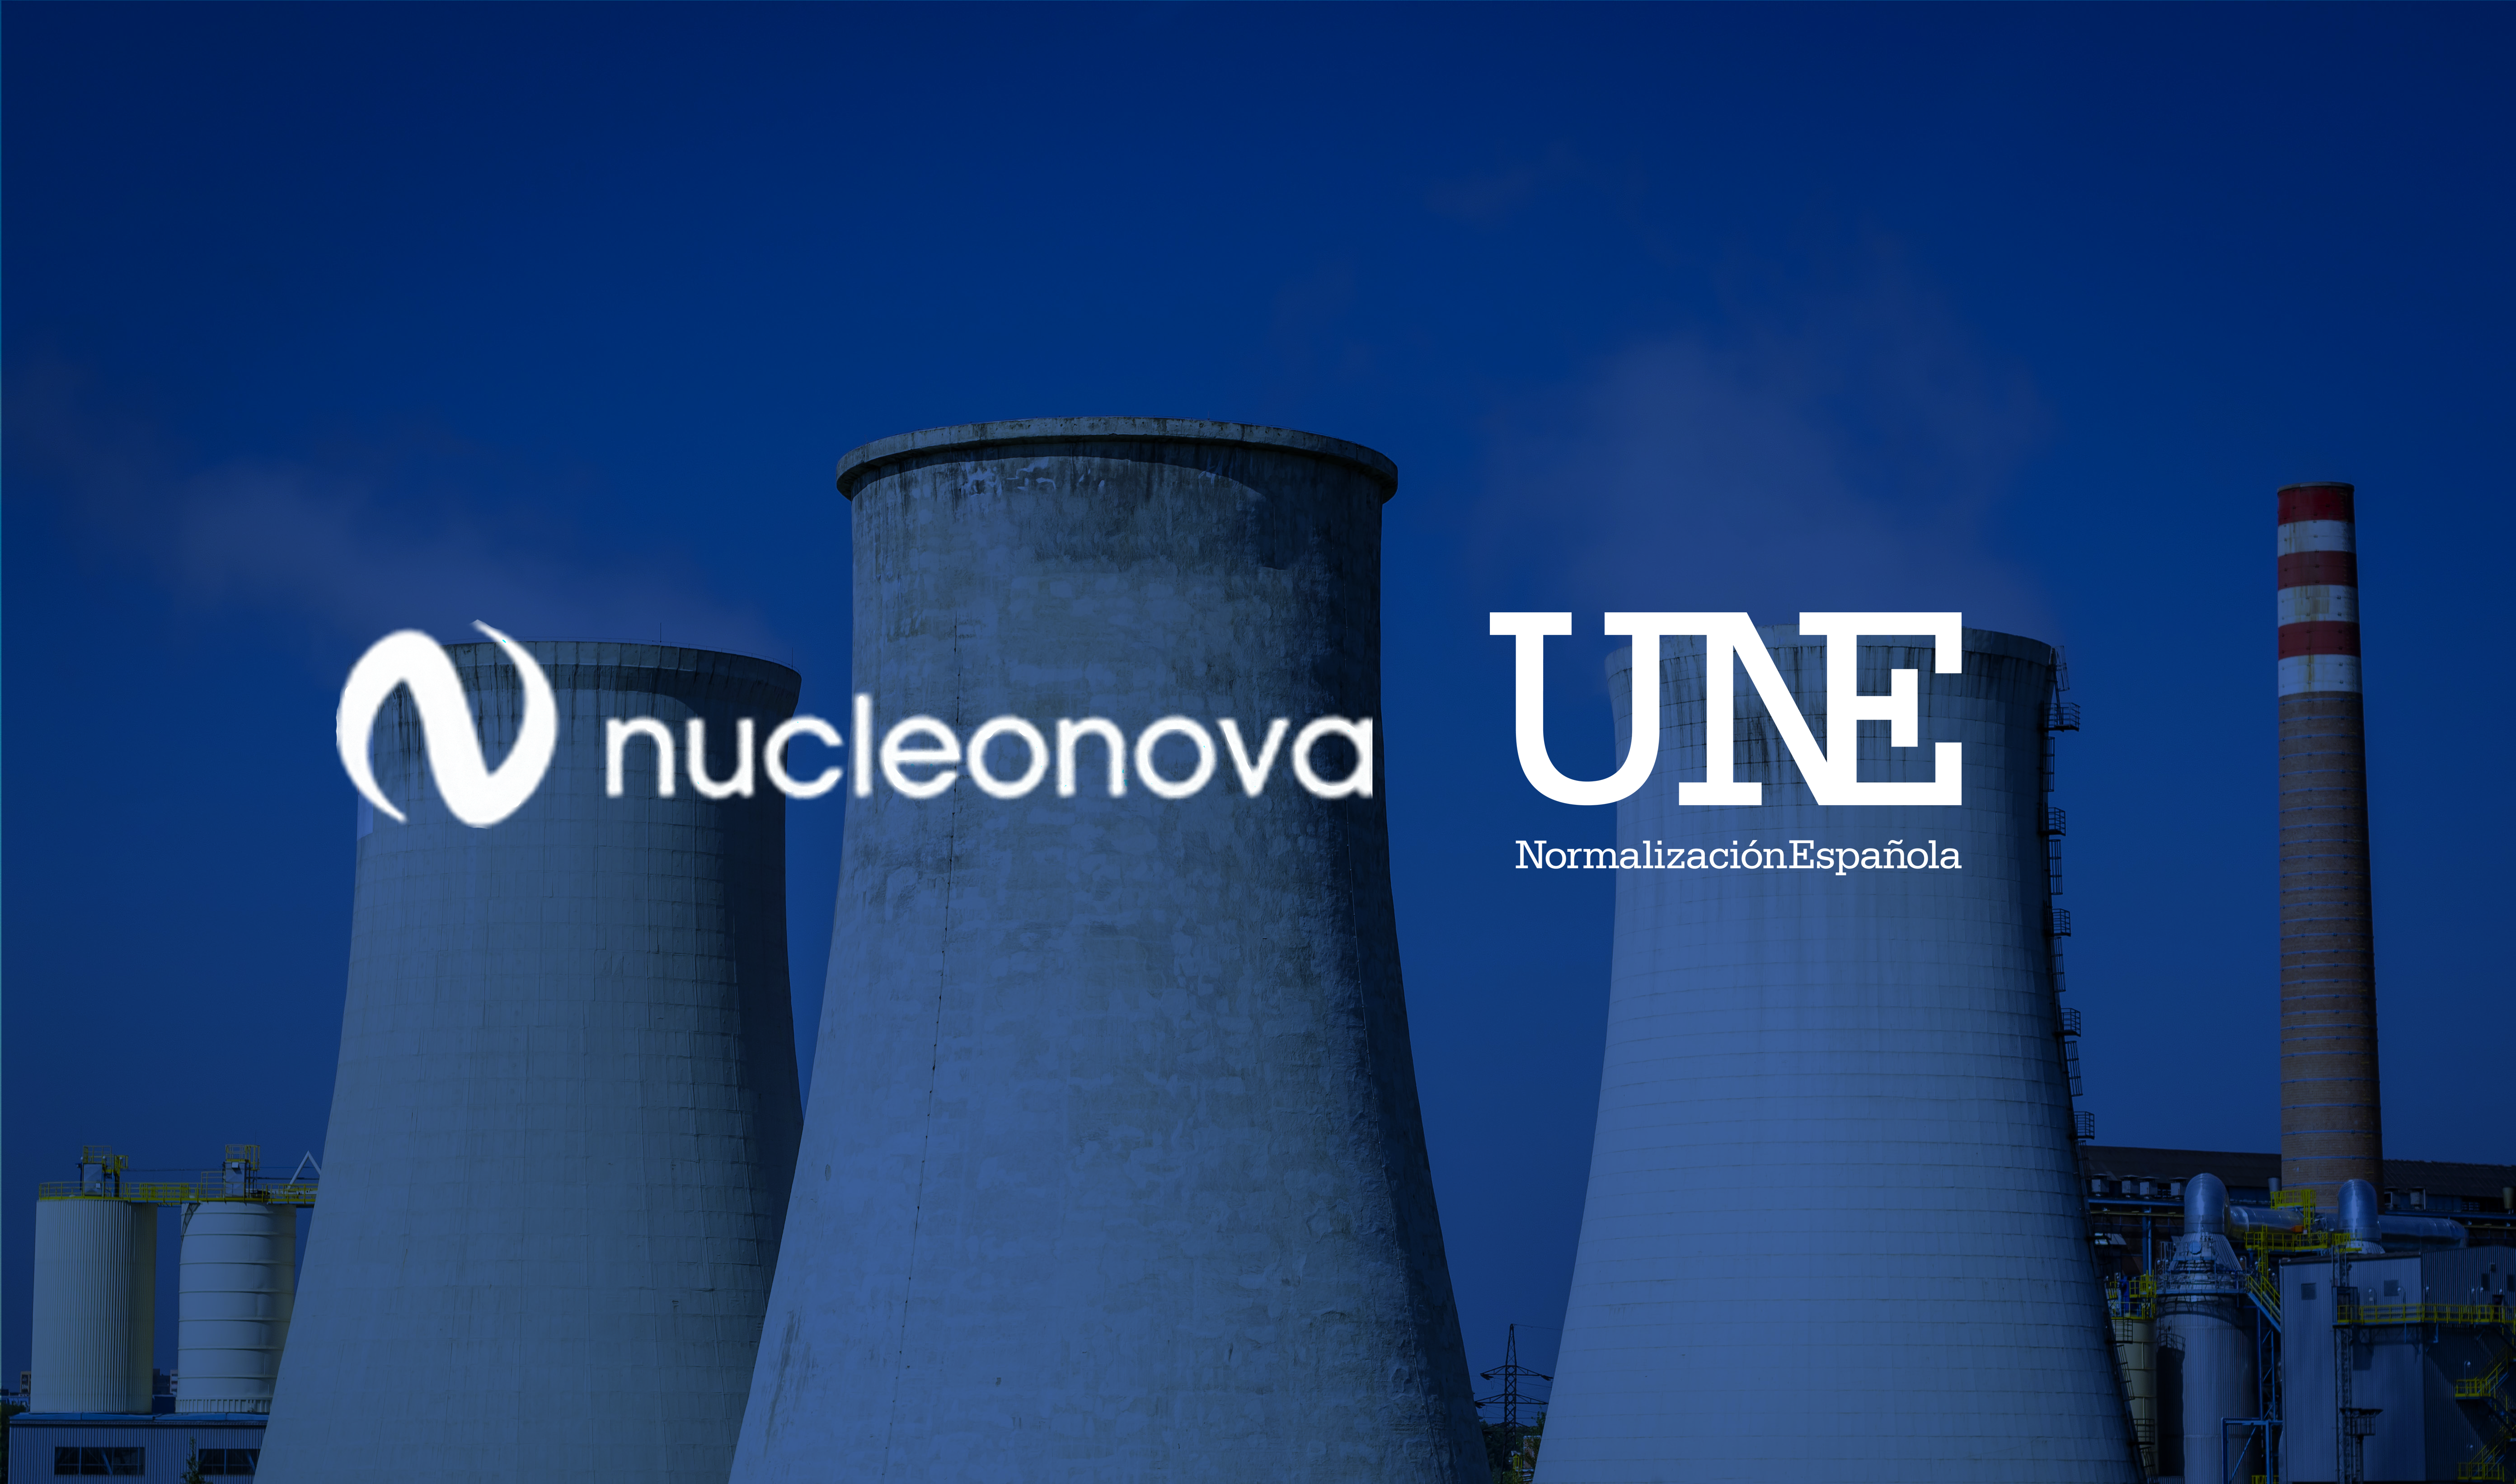 PARTICIPATION OF NUCLEONOVA, IN THE TECHNICAL COMMITTEE 73 OF UNE SPANISH ASSOCIATION OF NORMALIZATION AND NOMINATION AS EXPERTS.